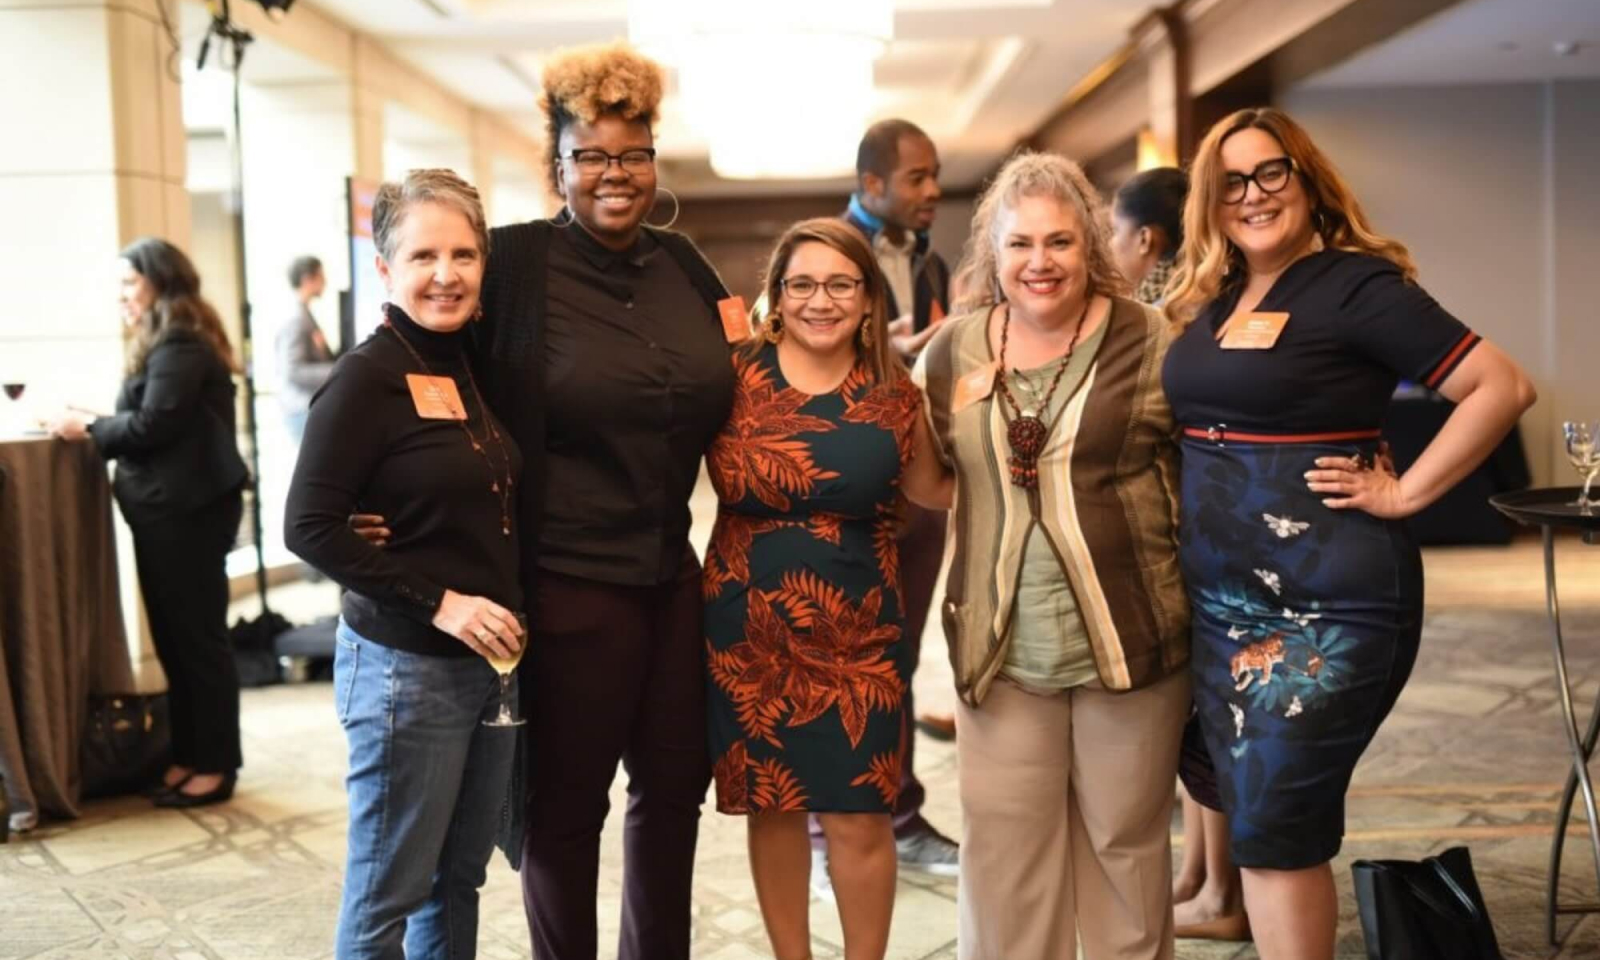 Members Gini Pupo-Walker, Tanesha Peoples, Marisol Quevedo Rerucha, and Alma Marquez meet with founding EdLoC CEO, Layla Avila, at the 2019 EdLoC National Convening. Photo courtesy of EdLoC.A group of EdLoC members at the 2019 National Convening